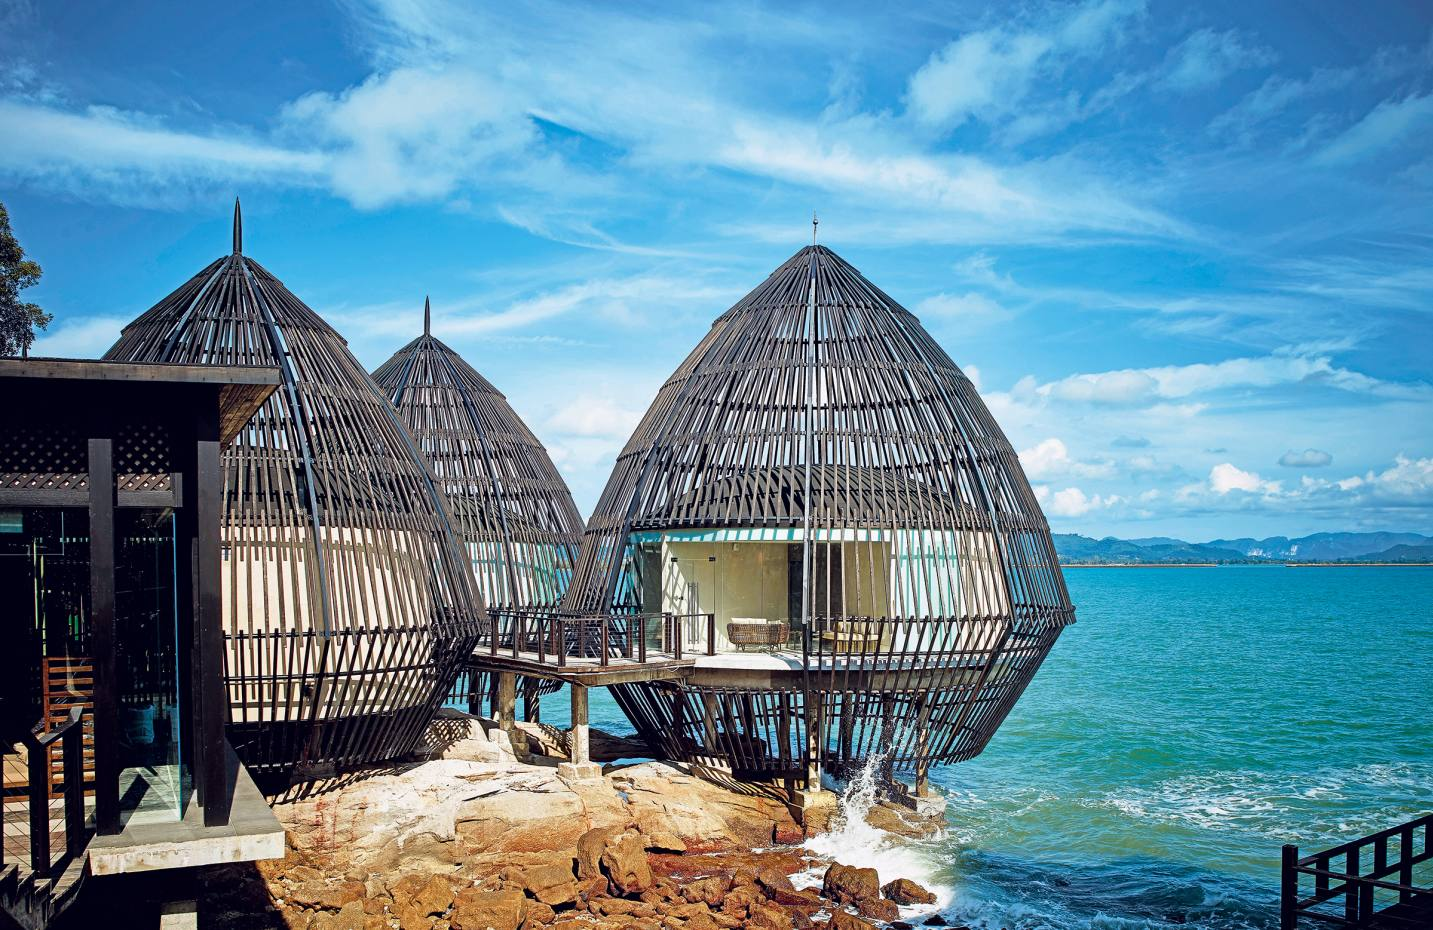 The overwater spa pods at The Ritz-Carlton in Langkawi have wow factor in abundance.